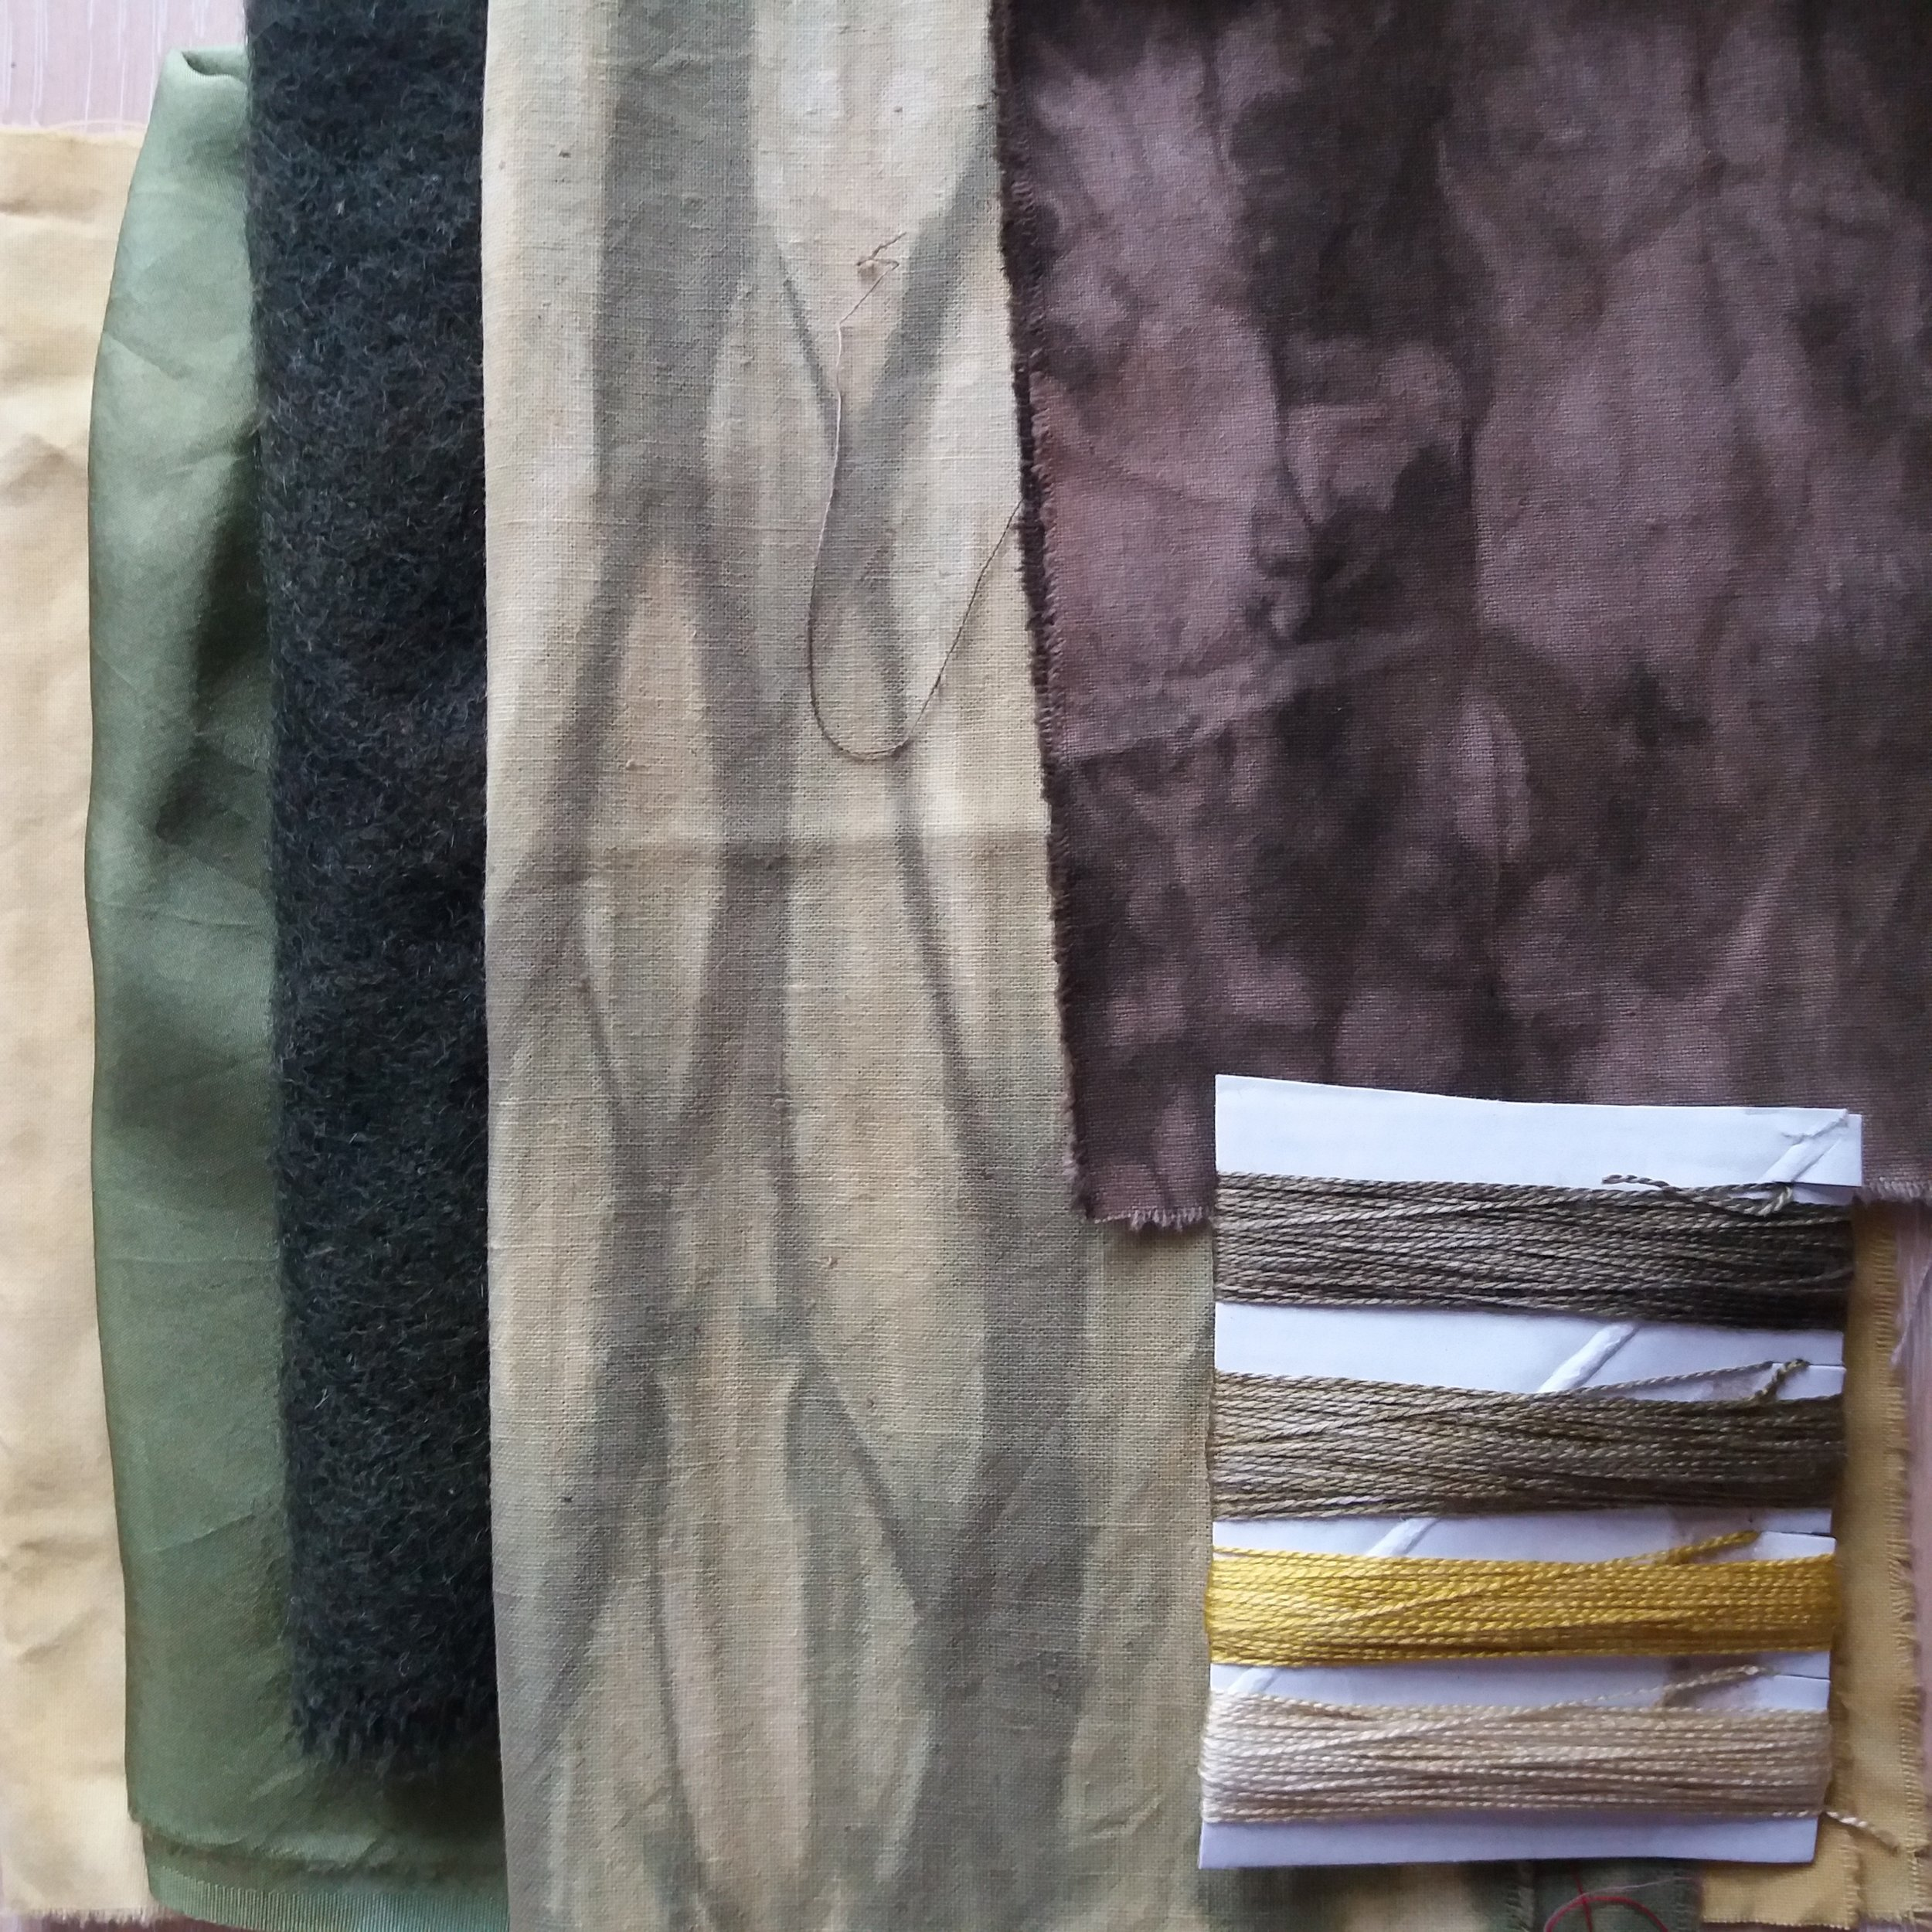 plant dyed fabric and thread 2 Lizzie Godden.jpg